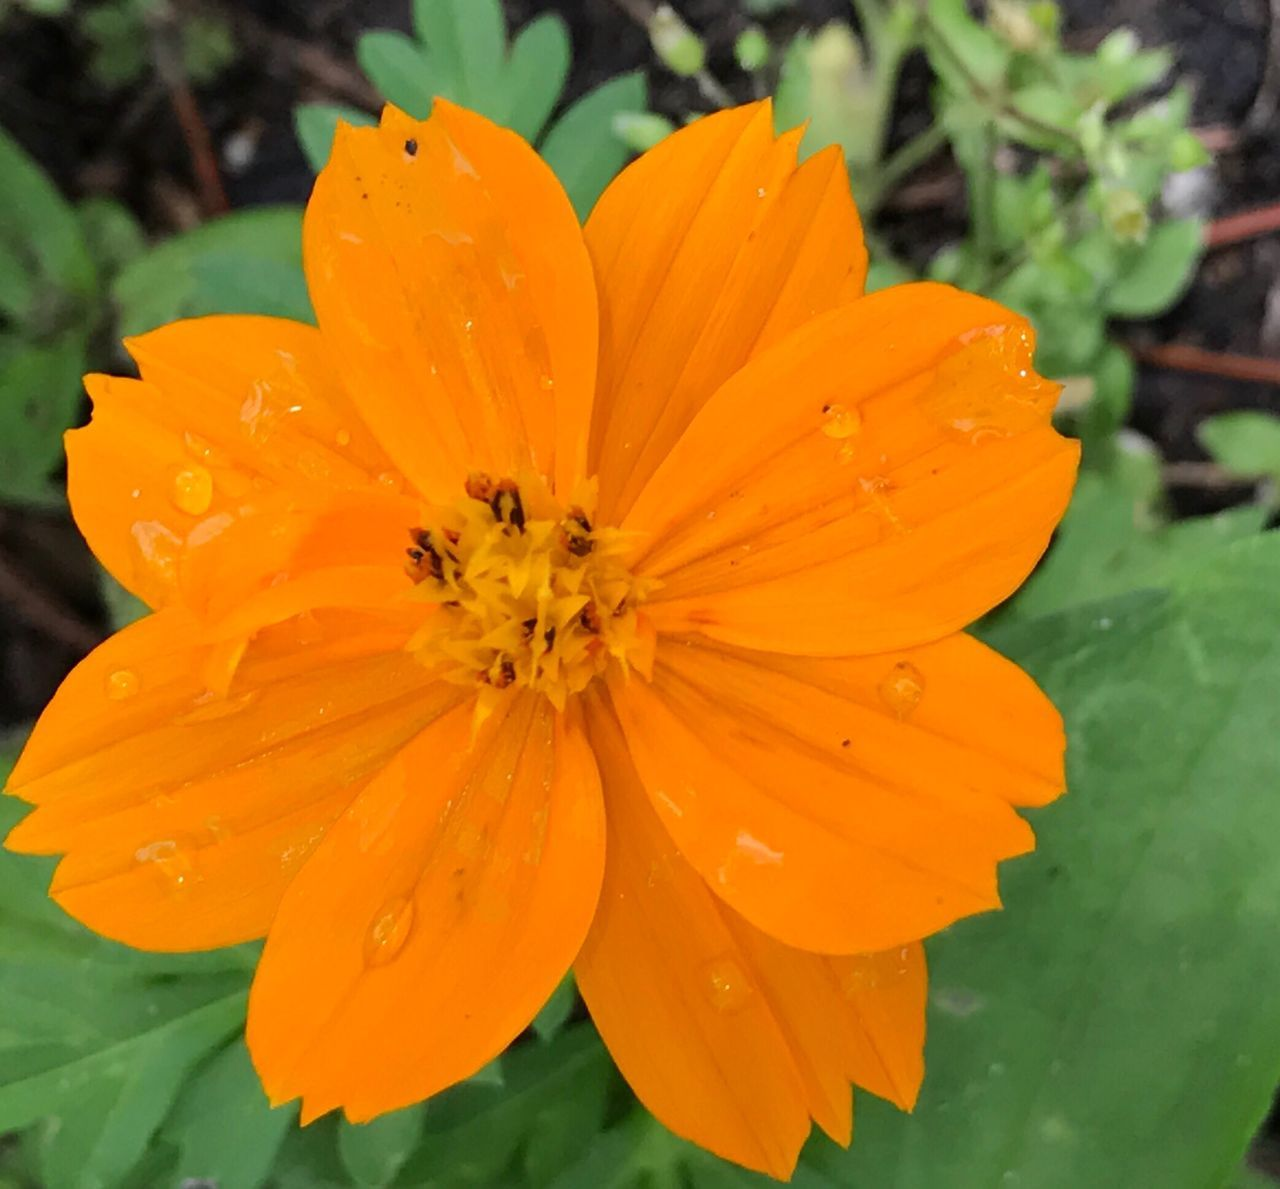 flower, petal, fragility, beauty in nature, nature, freshness, growth, flower head, orange color, plant, water, drop, wet, blooming, outdoors, no people, pollen, close-up, day, yellow